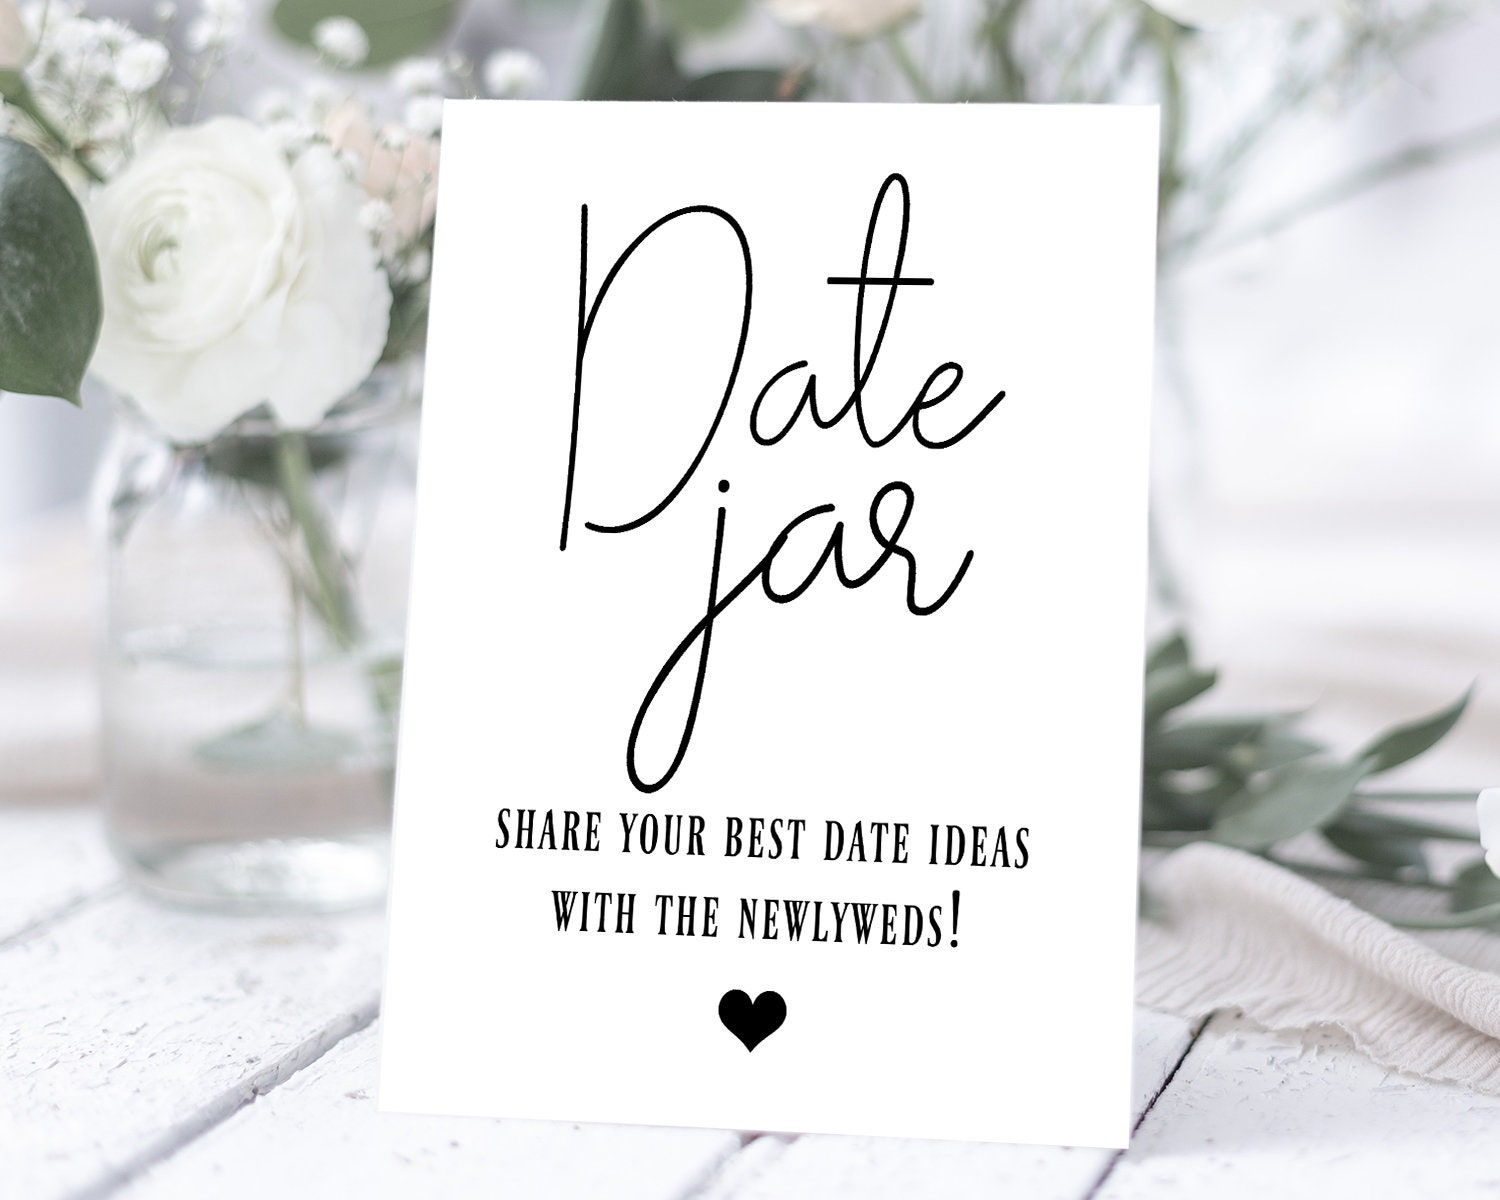 5x7 and 8x10 Shower and Wedding Table Signs Printable Eat Drink Dance Decor with a Simple Black Theme for Receptions and Partys